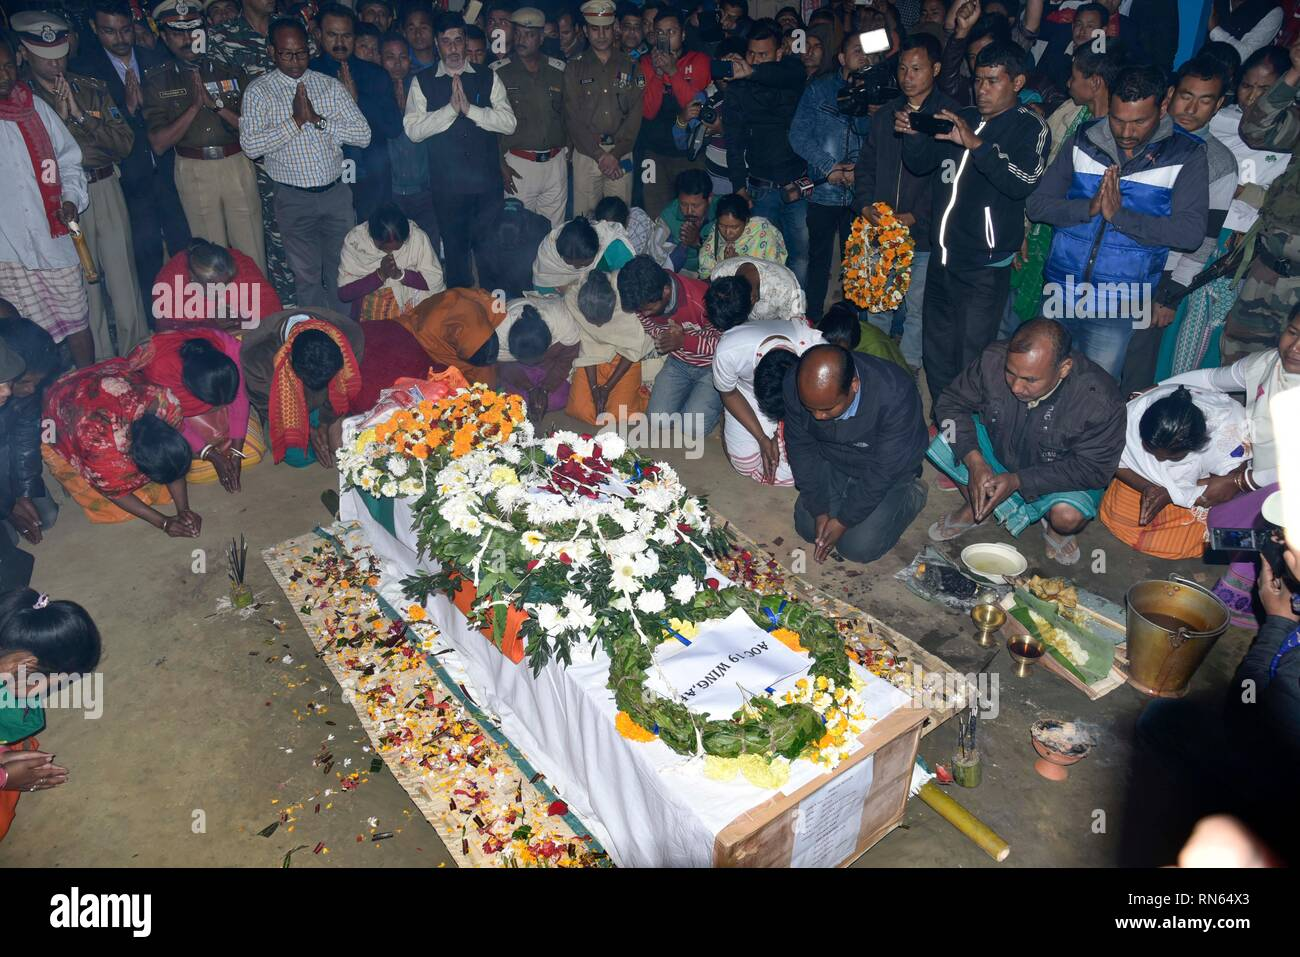 Assam, India. 16th Feb, 2019. Martyr Maneshwar Basumatary. Baksa, Assam, India. 16February 2019. Family members and relatives and others of slain Central Reserve Police Force (CRPF) soldier, Maneshwar Basumatary mourn near his coffin before his cremation ceremony at village Tamulpur in Baksa district, Assam, India, 16 February 2019. At least 44 Indian paramilitary Central Reserve Police Force personnel were killed and several injured when a Jaish-e-Mohammed militant rammed an explosive-laden vehicle into a CRPF convoy along the Srinagar-Jammu highway at Lethpora area in South Kashmir's Pulwama - Stock Image